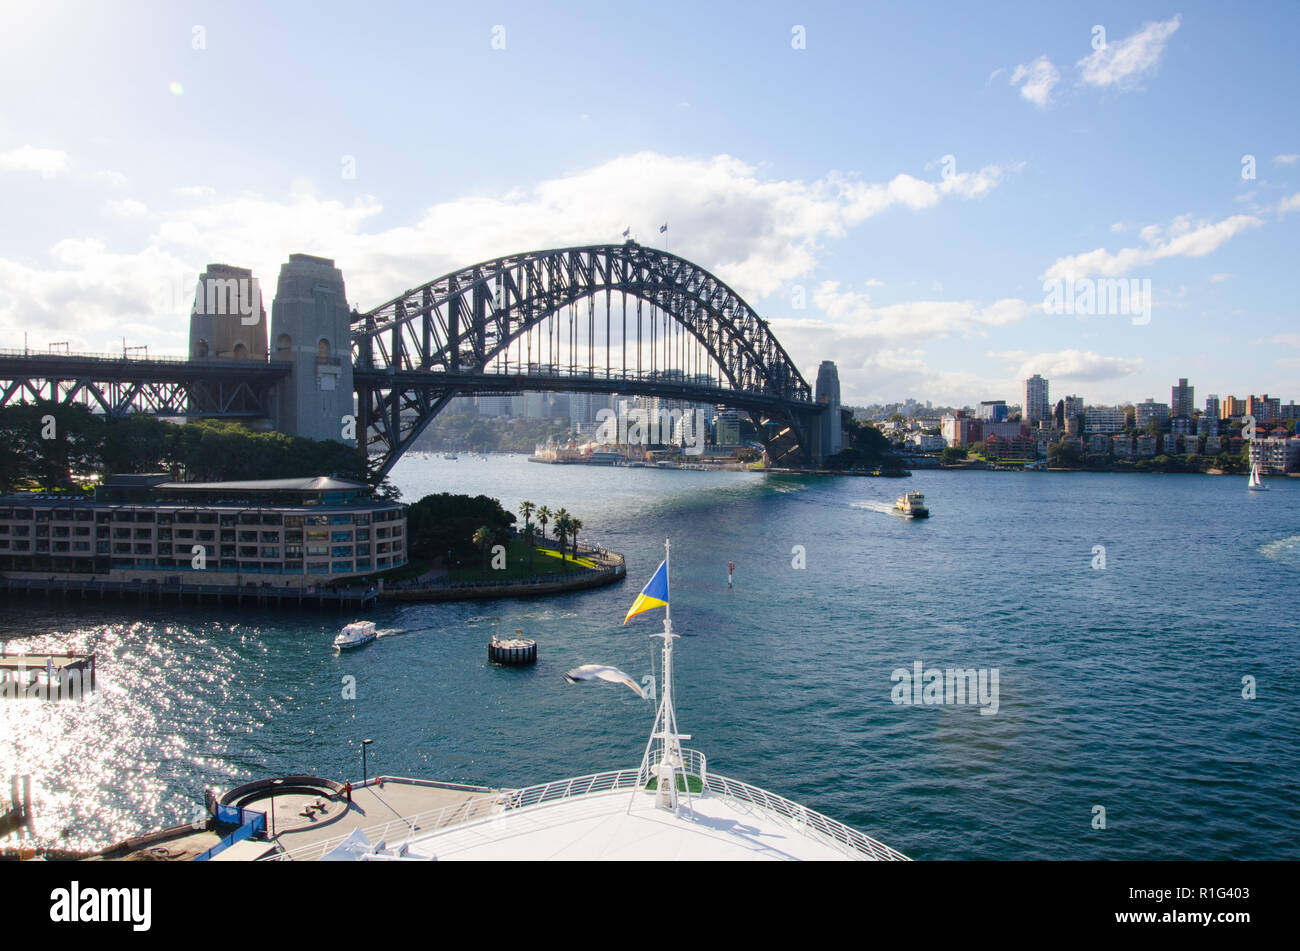 Looking across Sydney Harbour towards Sydney Harbour Bridge from deck of cruise ship docked at the Overseas Passenger Terminal in Circular Quay. - Stock Image